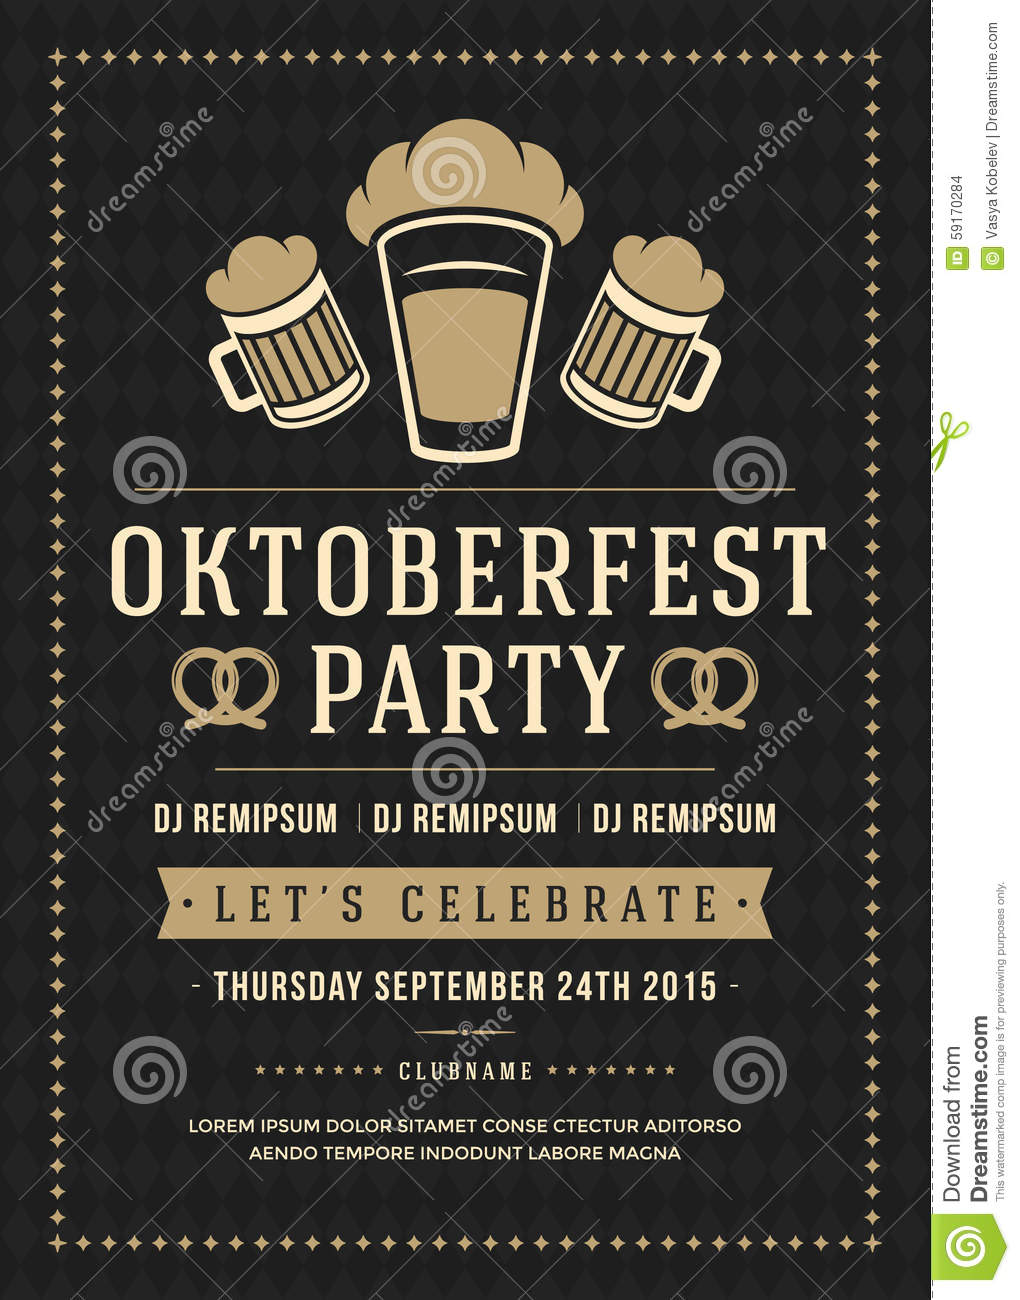 Oktoberfest in the OktoberfestdeShop